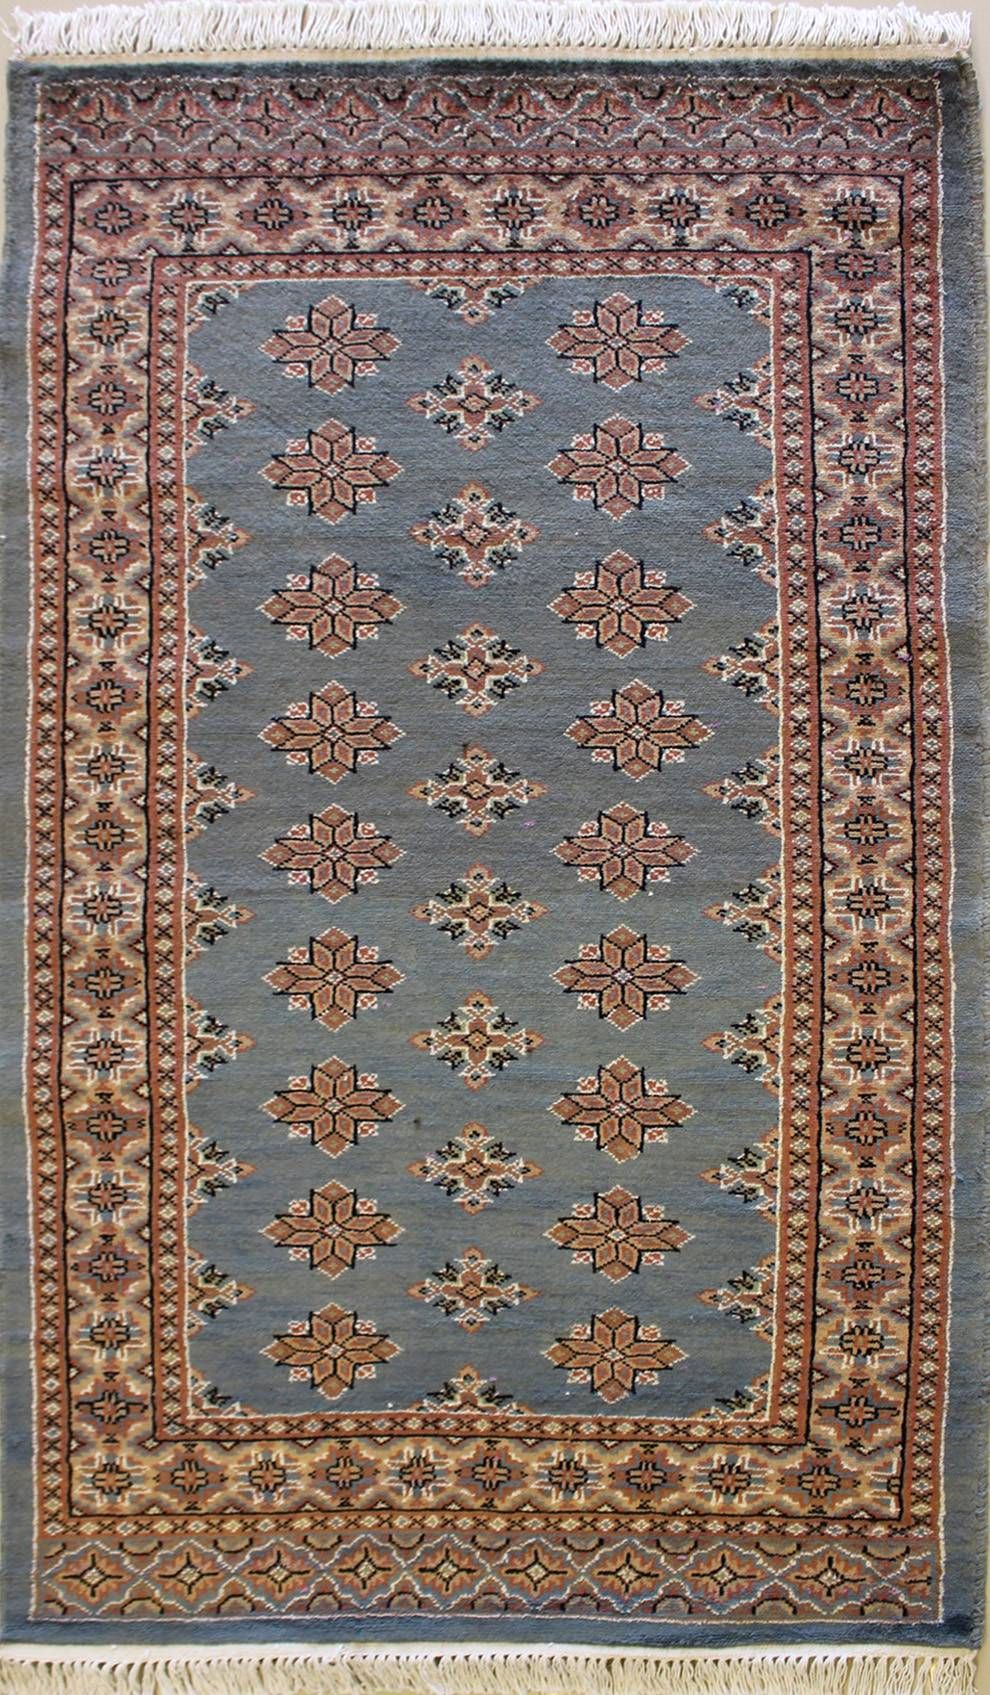 "2'11""x5'2"" Pak Jaldar Gray, Sky Blue Color"